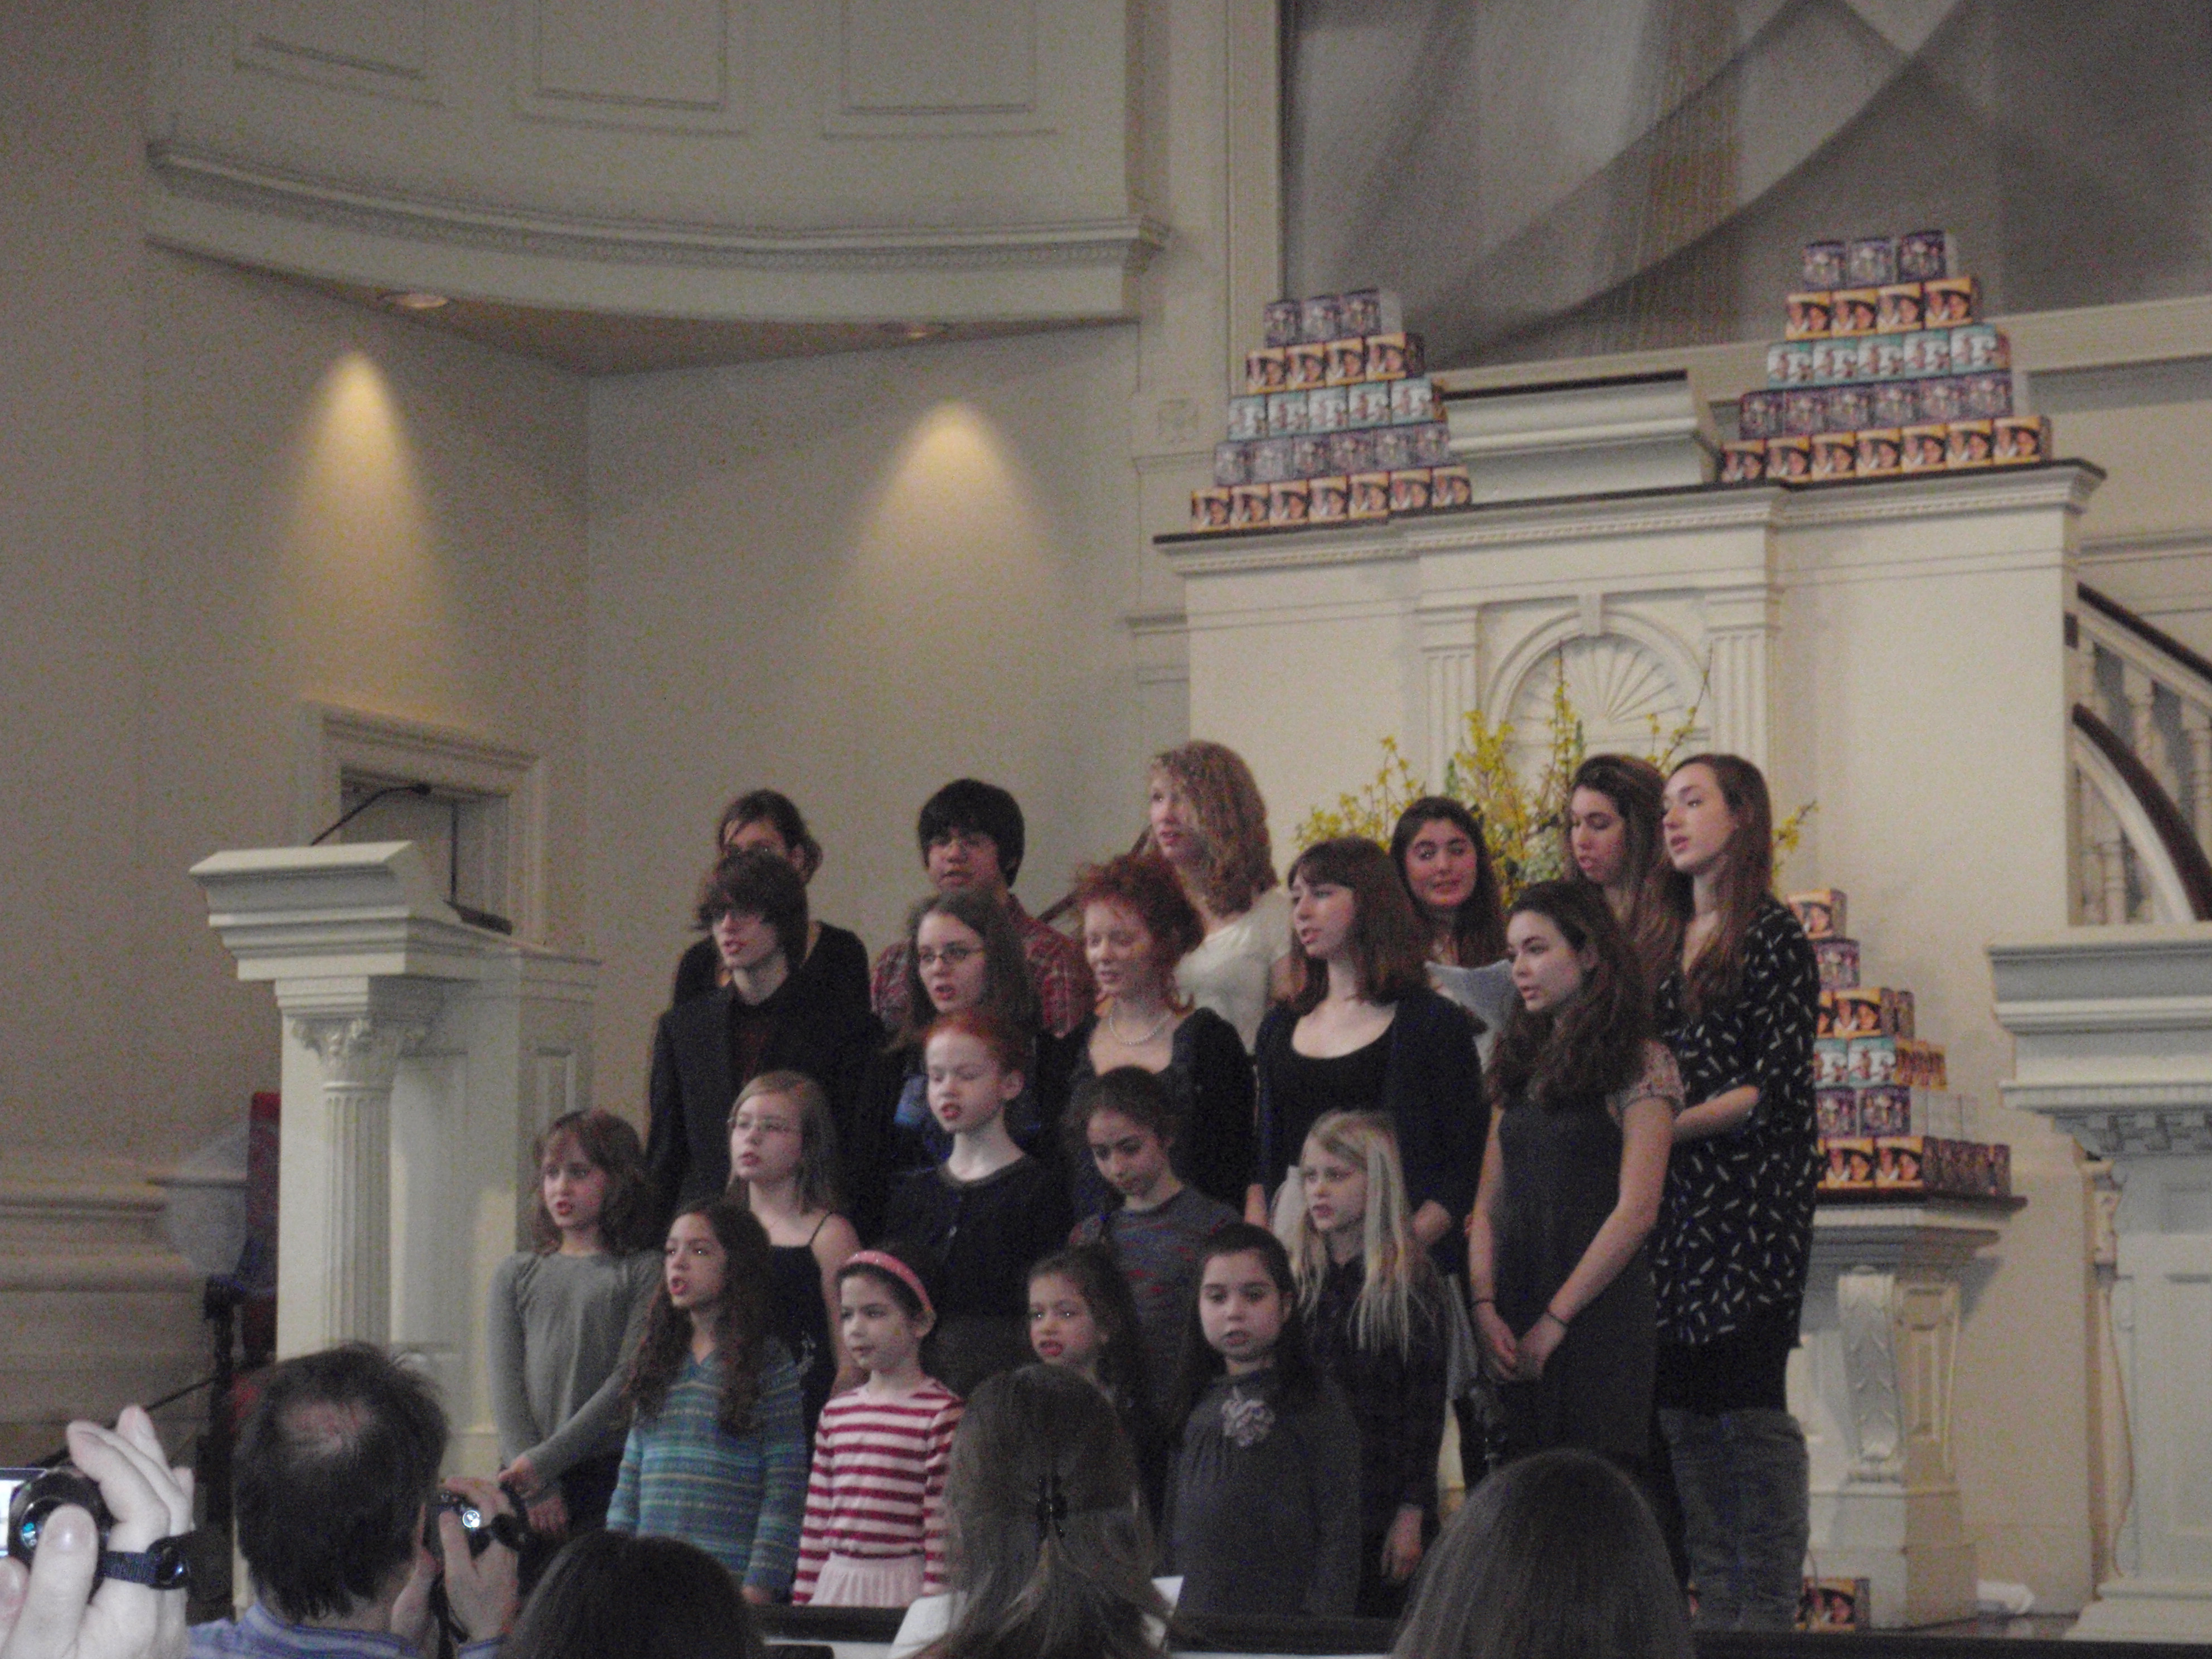 All Souls Children and Youth Concert, conducted by Kristin